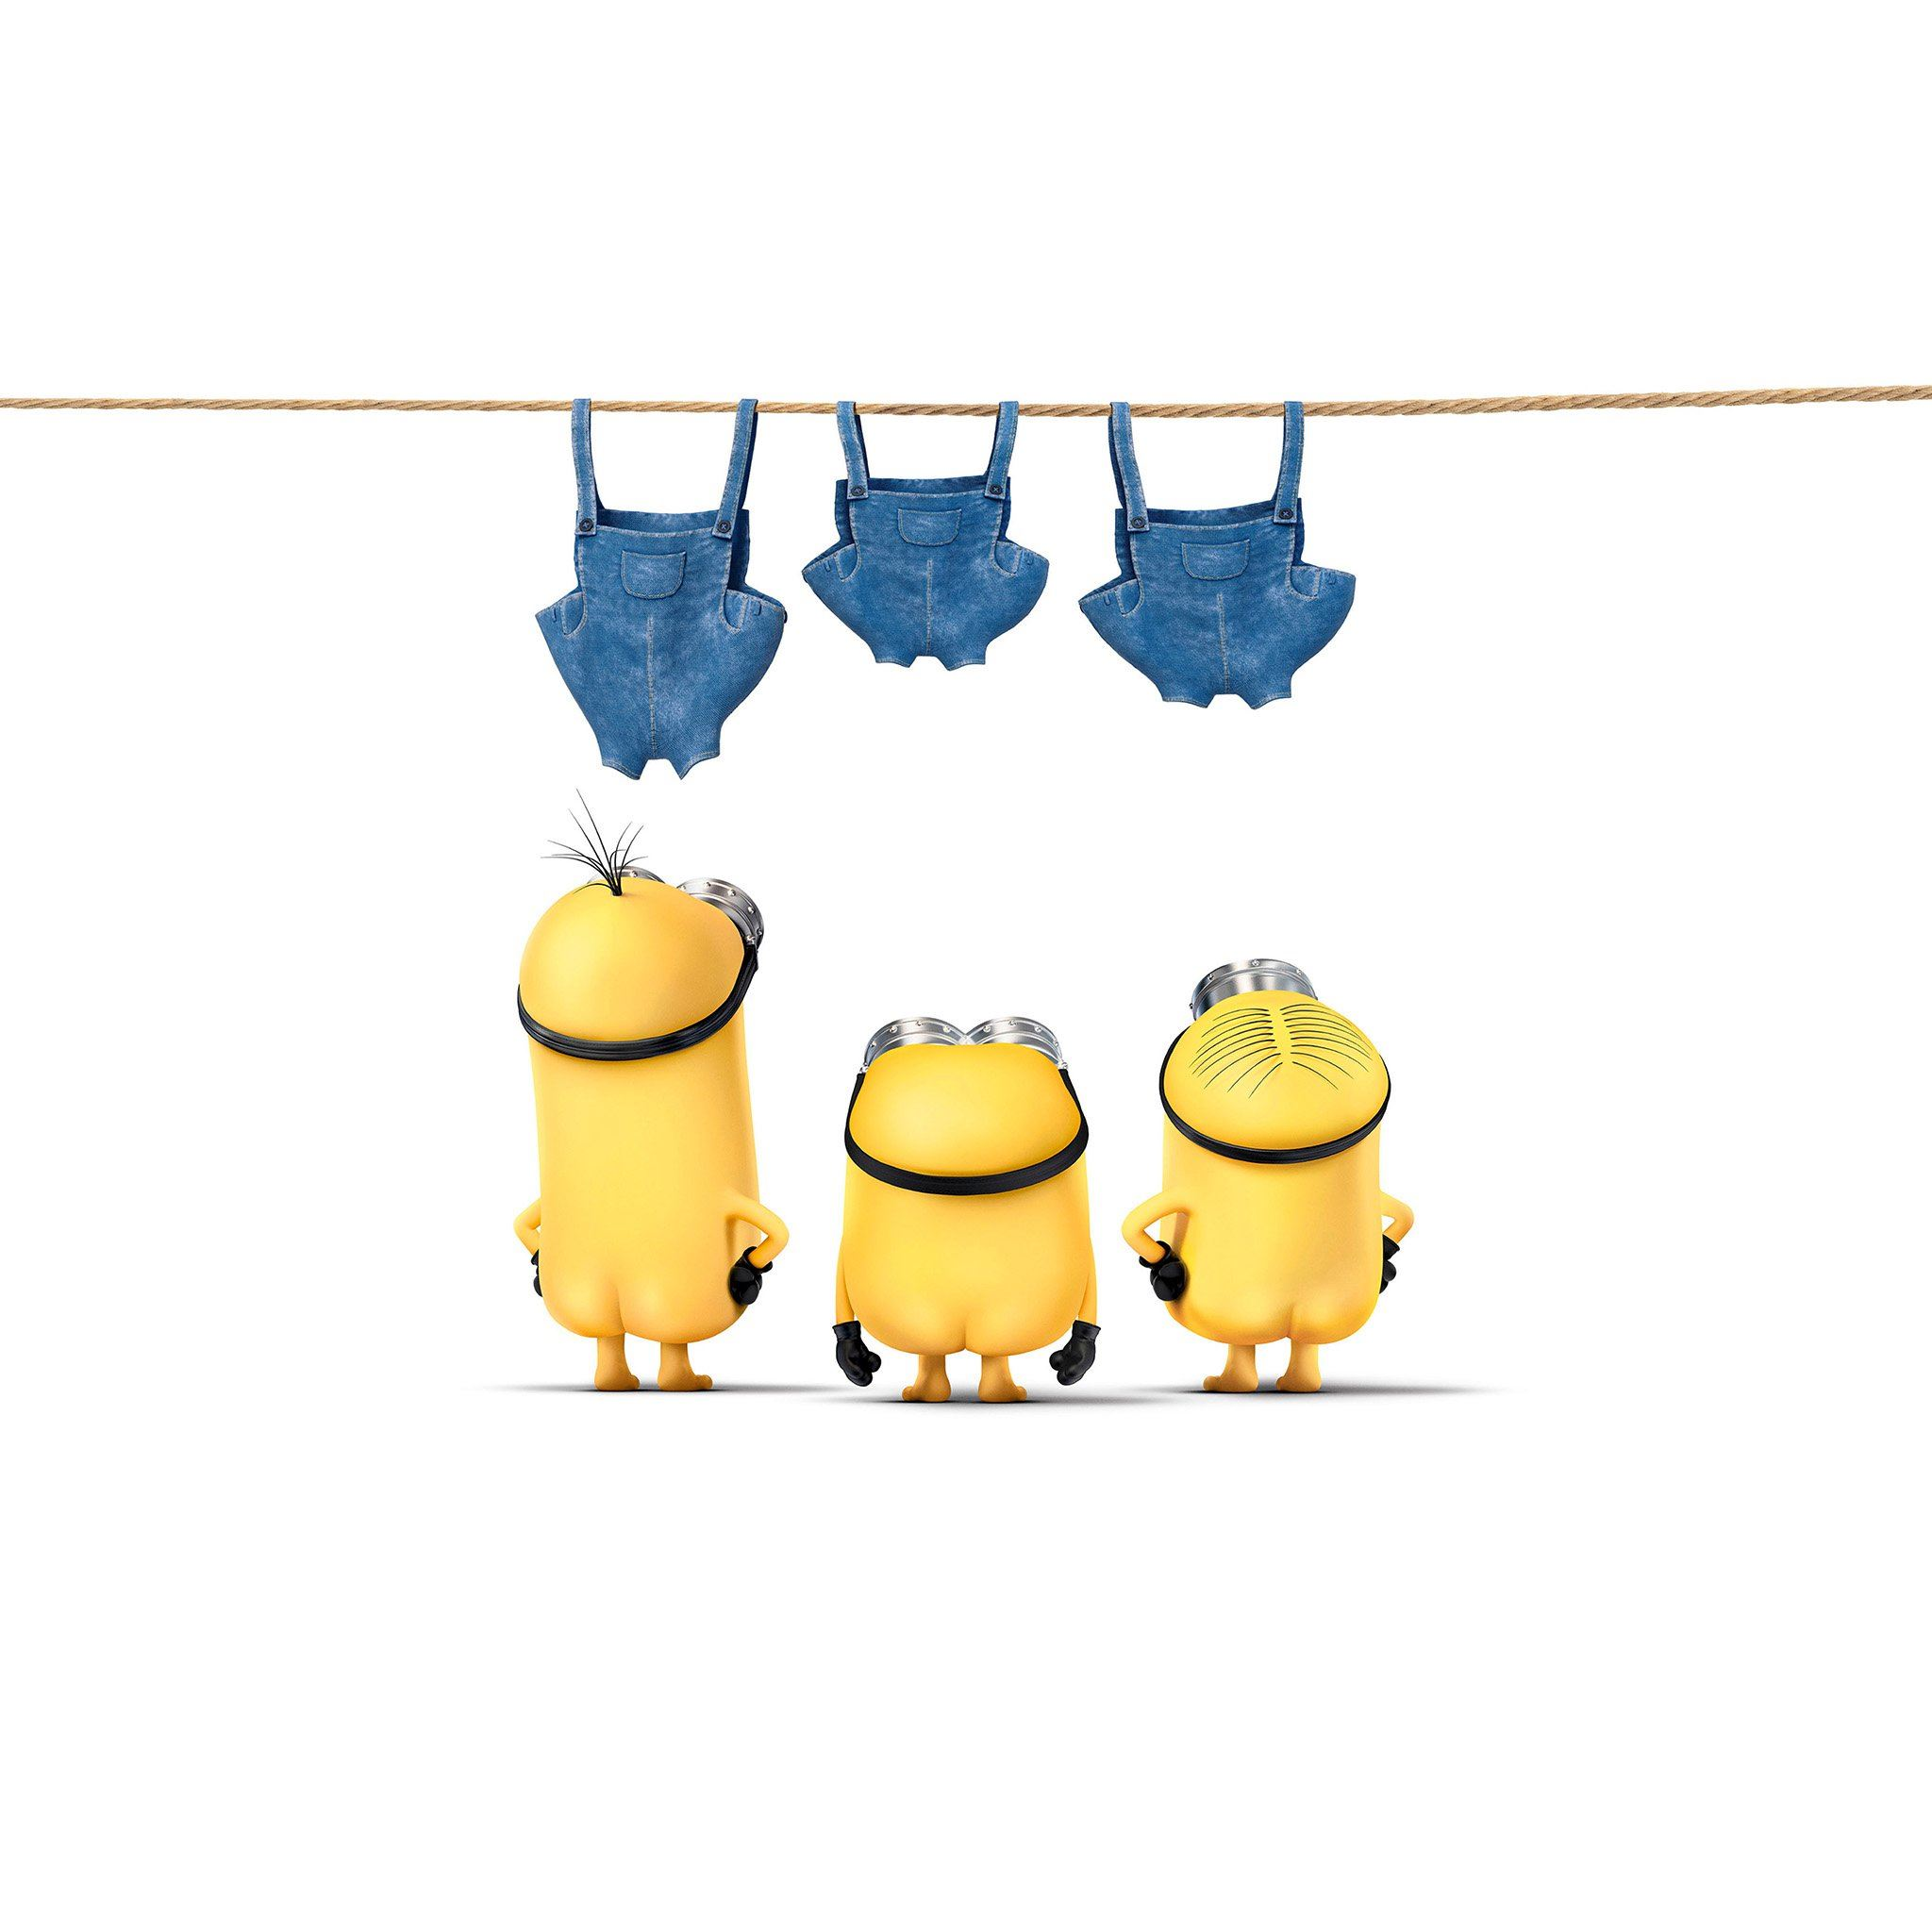 Minions Despicable Nude Me Cute Yellow Art Illustration iPad Air wallpaper